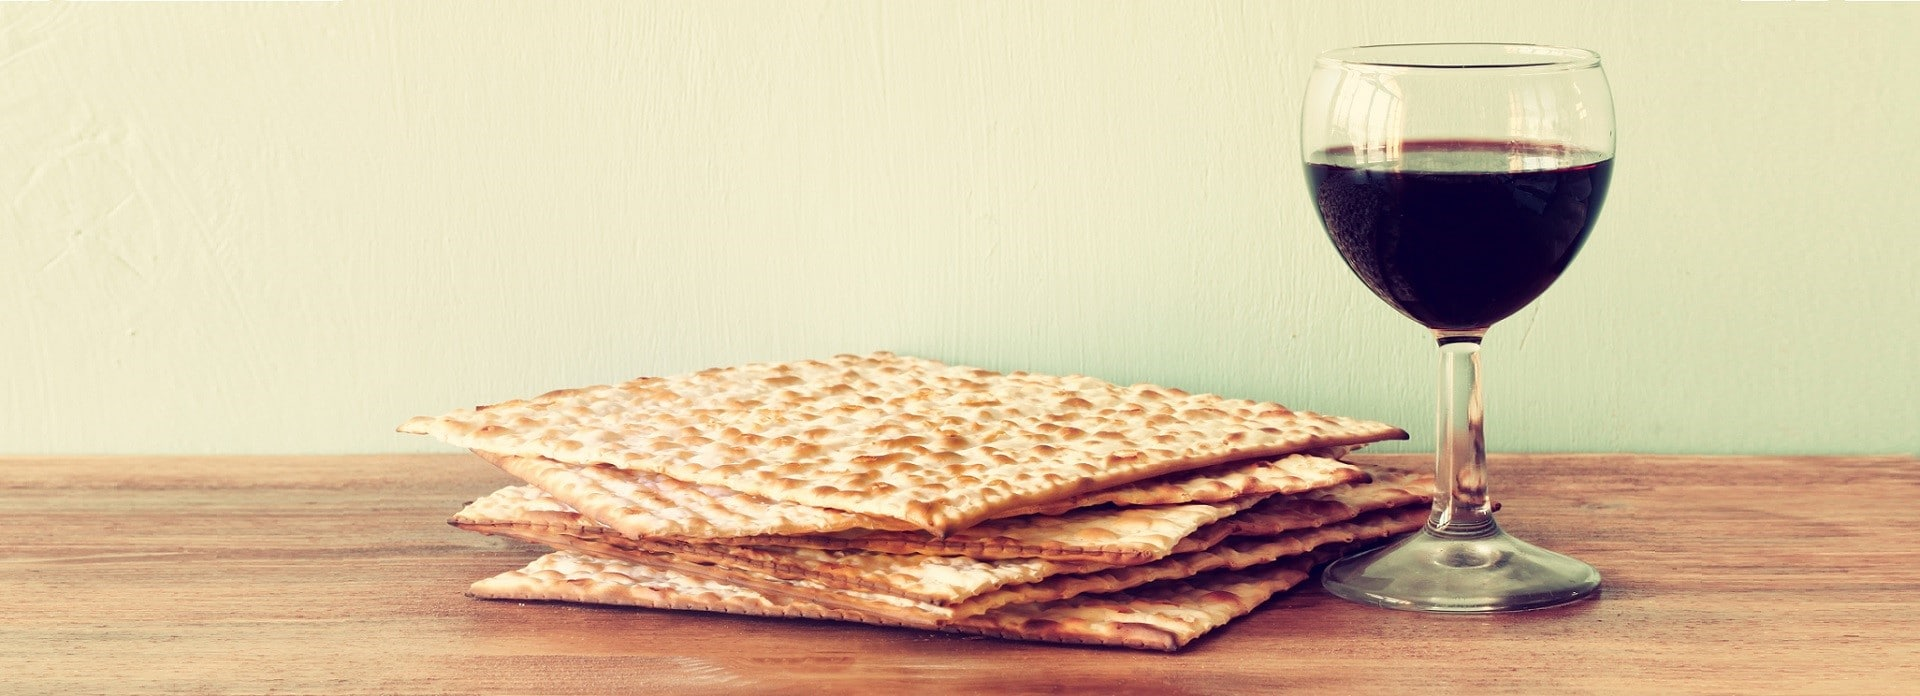 Passover 2017 images